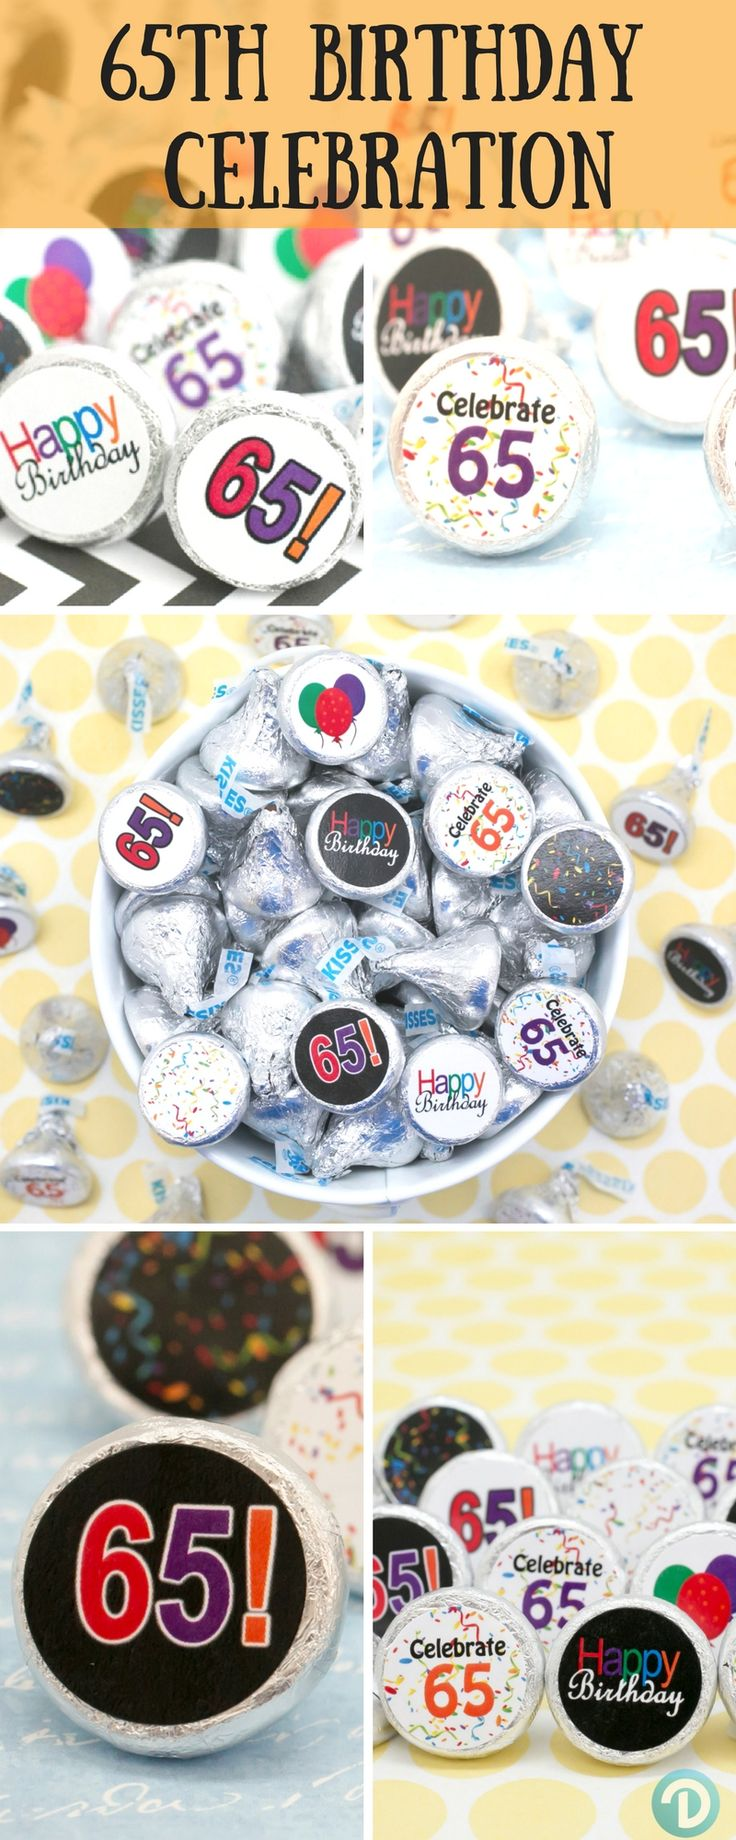 Celebrate turning 65!  Create cool and delicious party favors or table decorations everyone will love with our Happy 65th Birthday celebration stickers.   Simply peel and stick on Hershey Kisses.